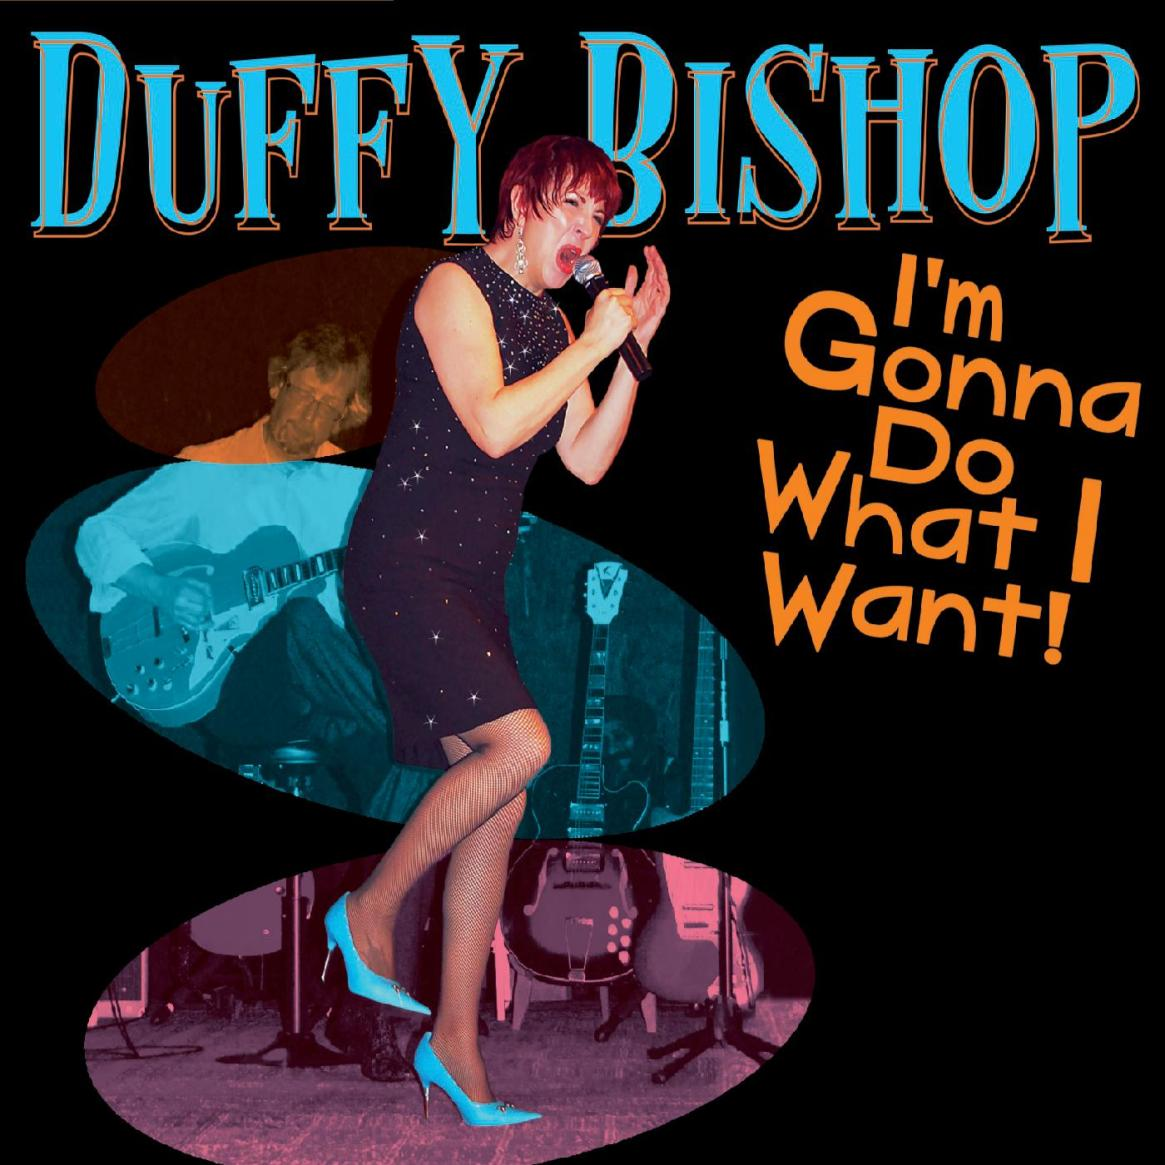 Duffy-Bishop-Im-Gonna-Do-What-I-Want-